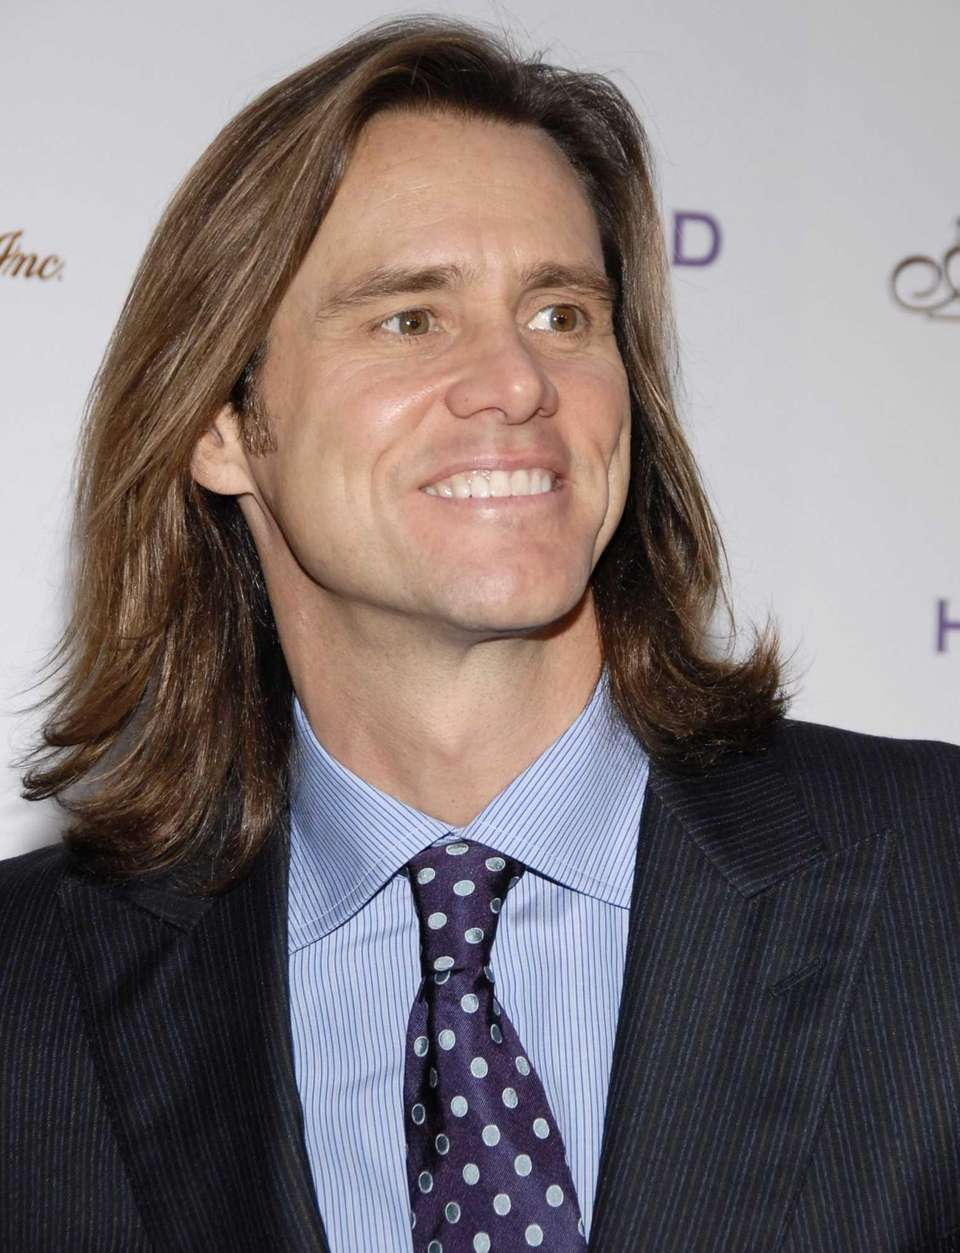 Jim Carrey was born in Ontario, Canada. His